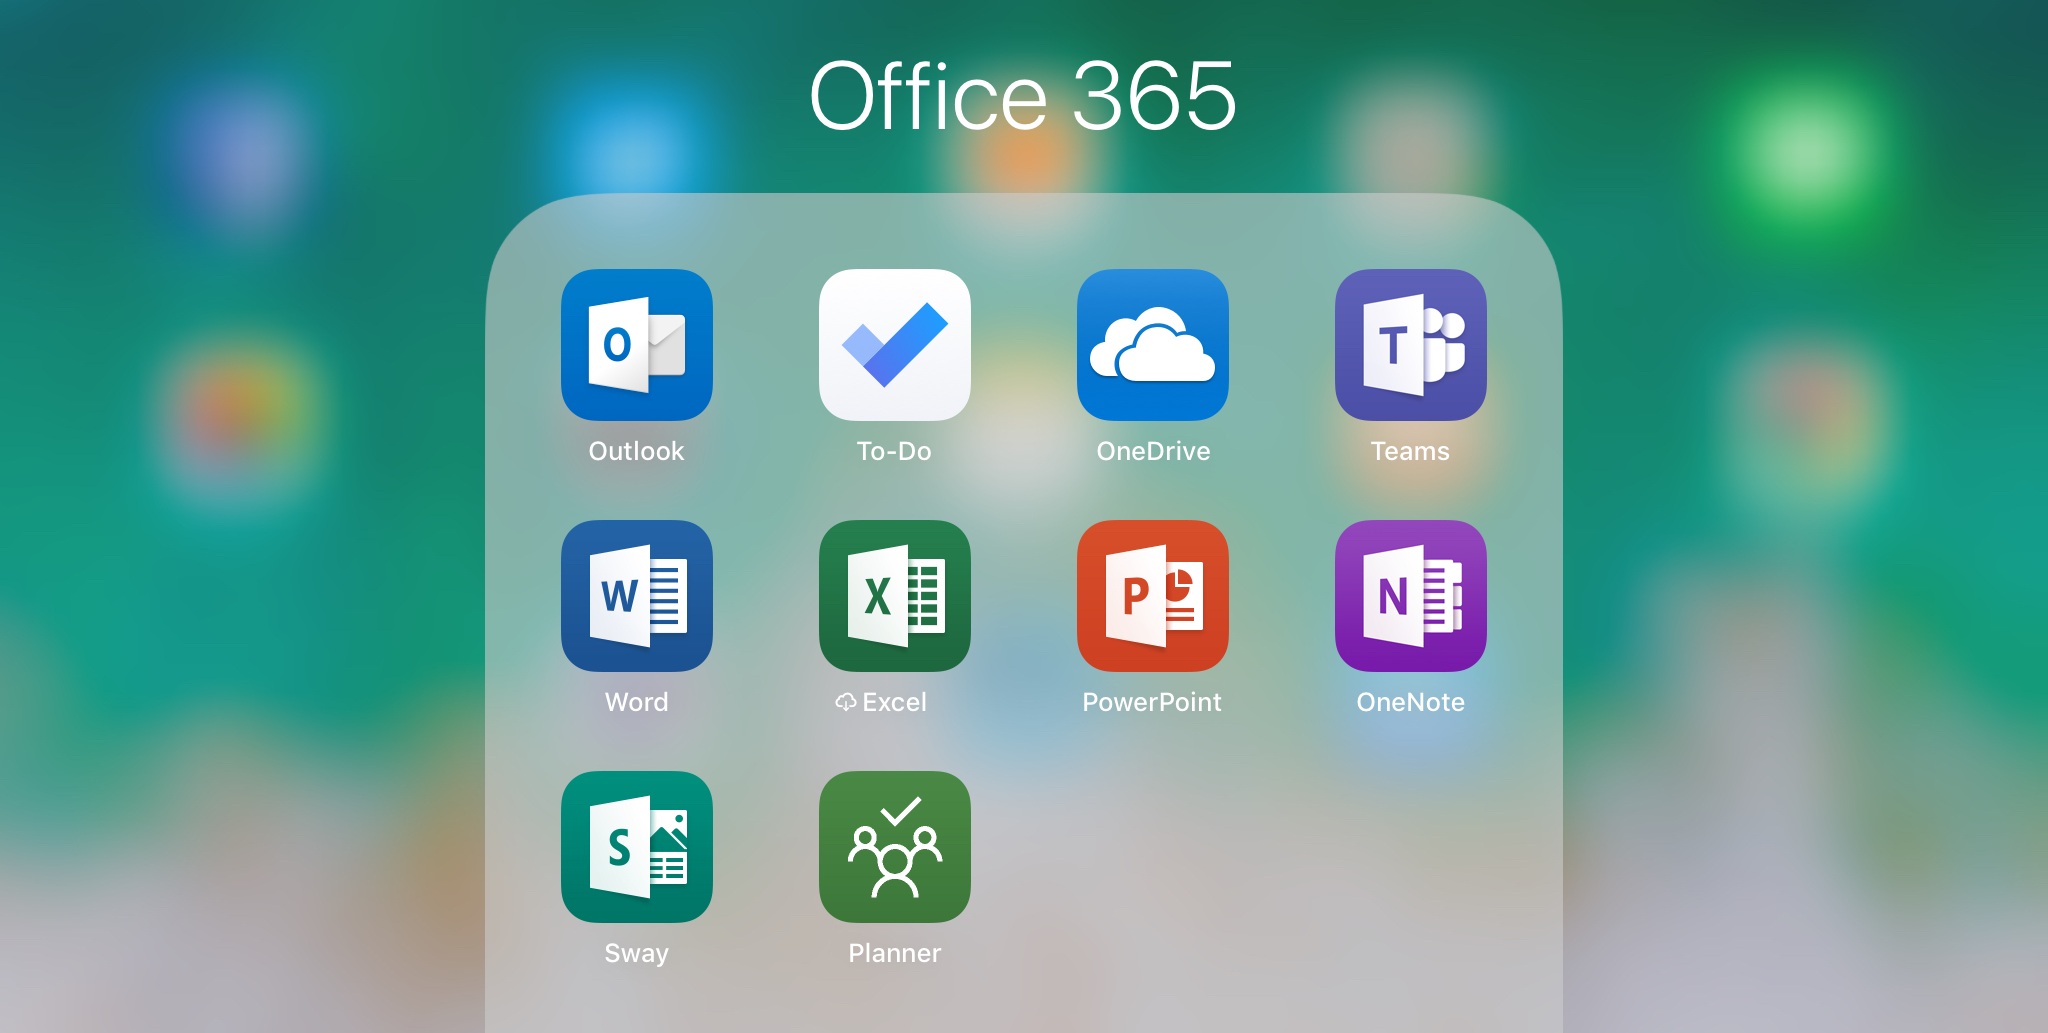 iPad Office 365